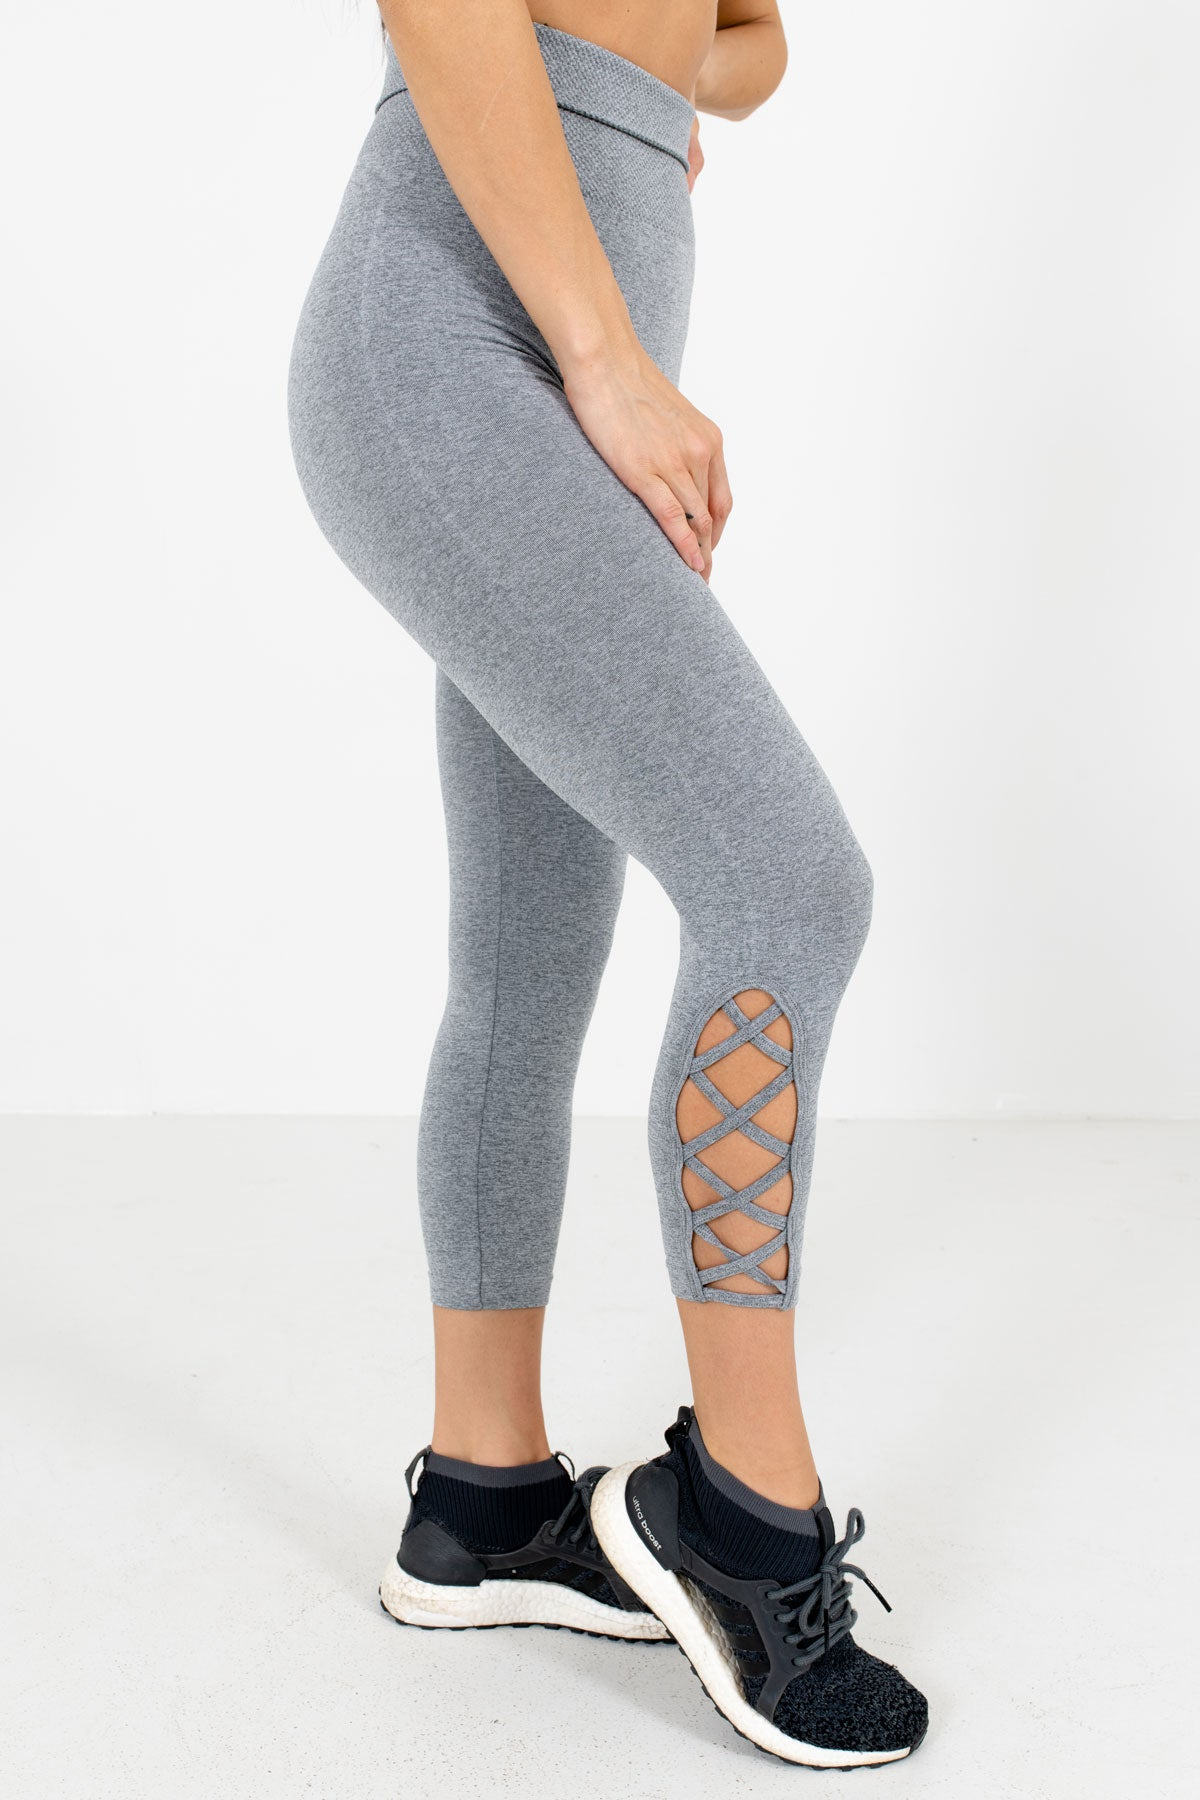 Heather Gray High Waisted Style Boutique Active Leggings for Women